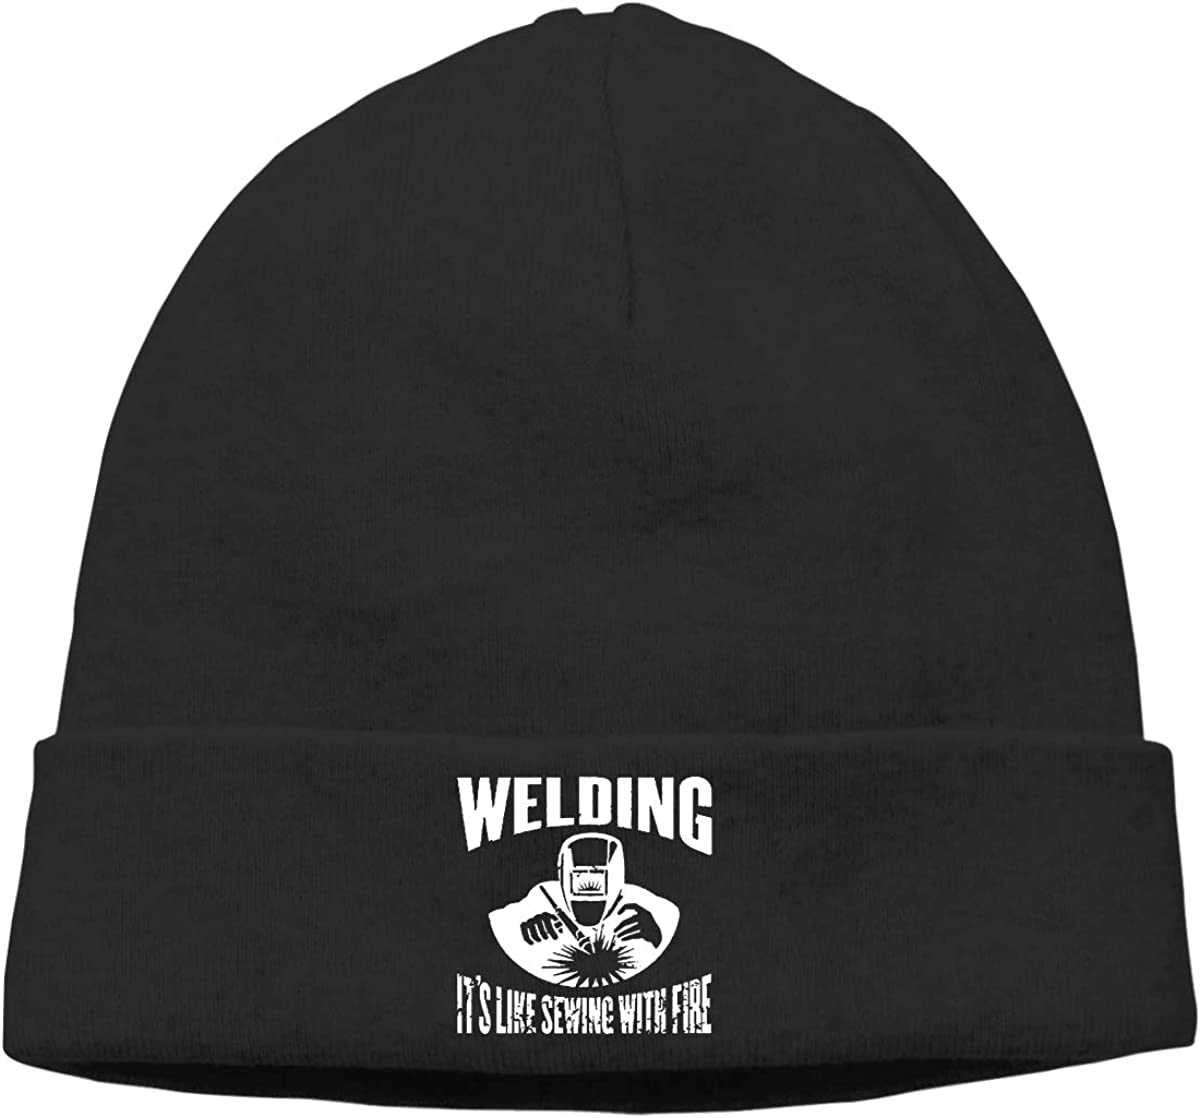 Classic Welding Its Like Sewing with Fire Cap Men /& Women Warm /& Stylish Knit Hat Cap Knit Cuff Beanie